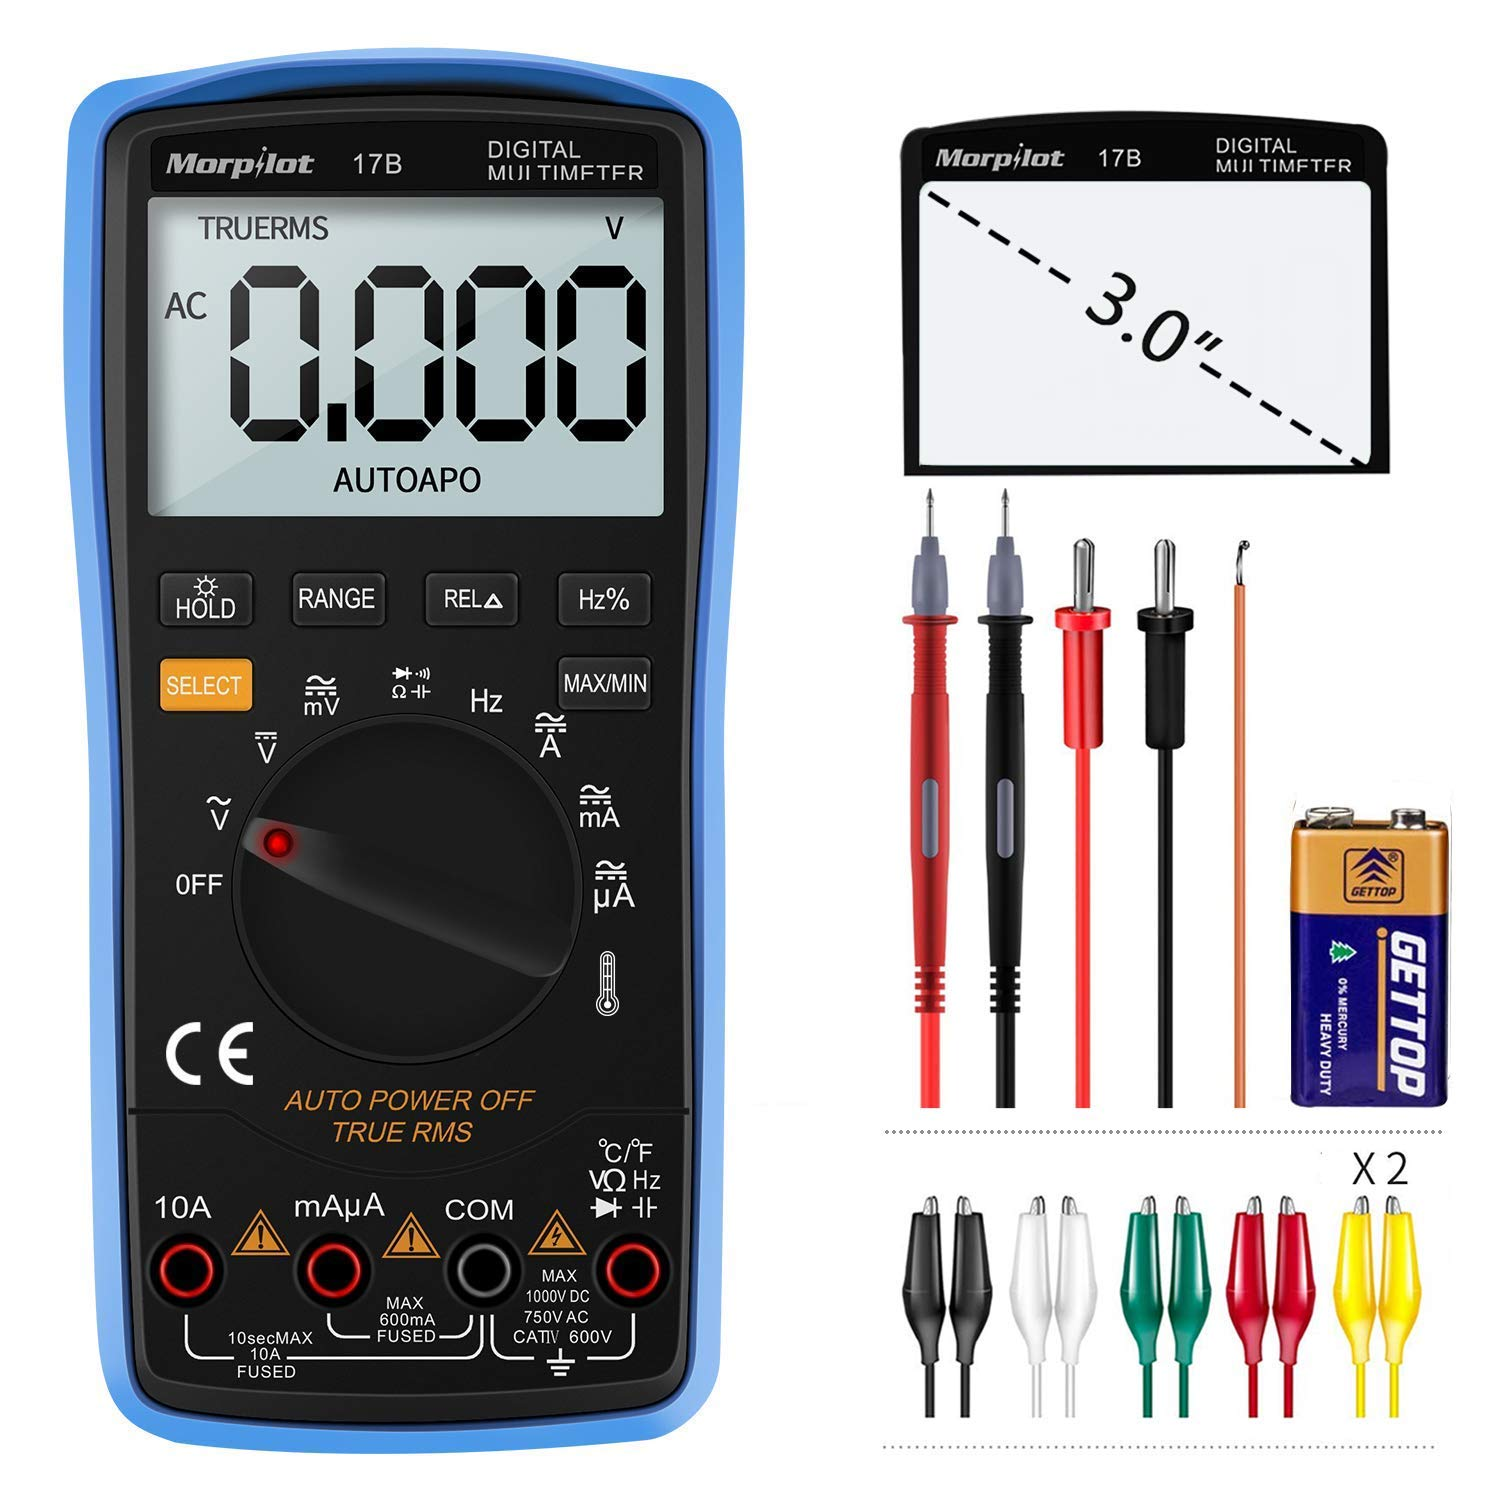 Digital Multimeter, Morpilot Auto-Ranging 6000 Counts DC/AC Voltage & Current, Resistance, Frequency, Continuity, Capacitance, Diode, Temperature, 3.0 Inch Backlight Large LCD Display & Test Leads by Keenstone